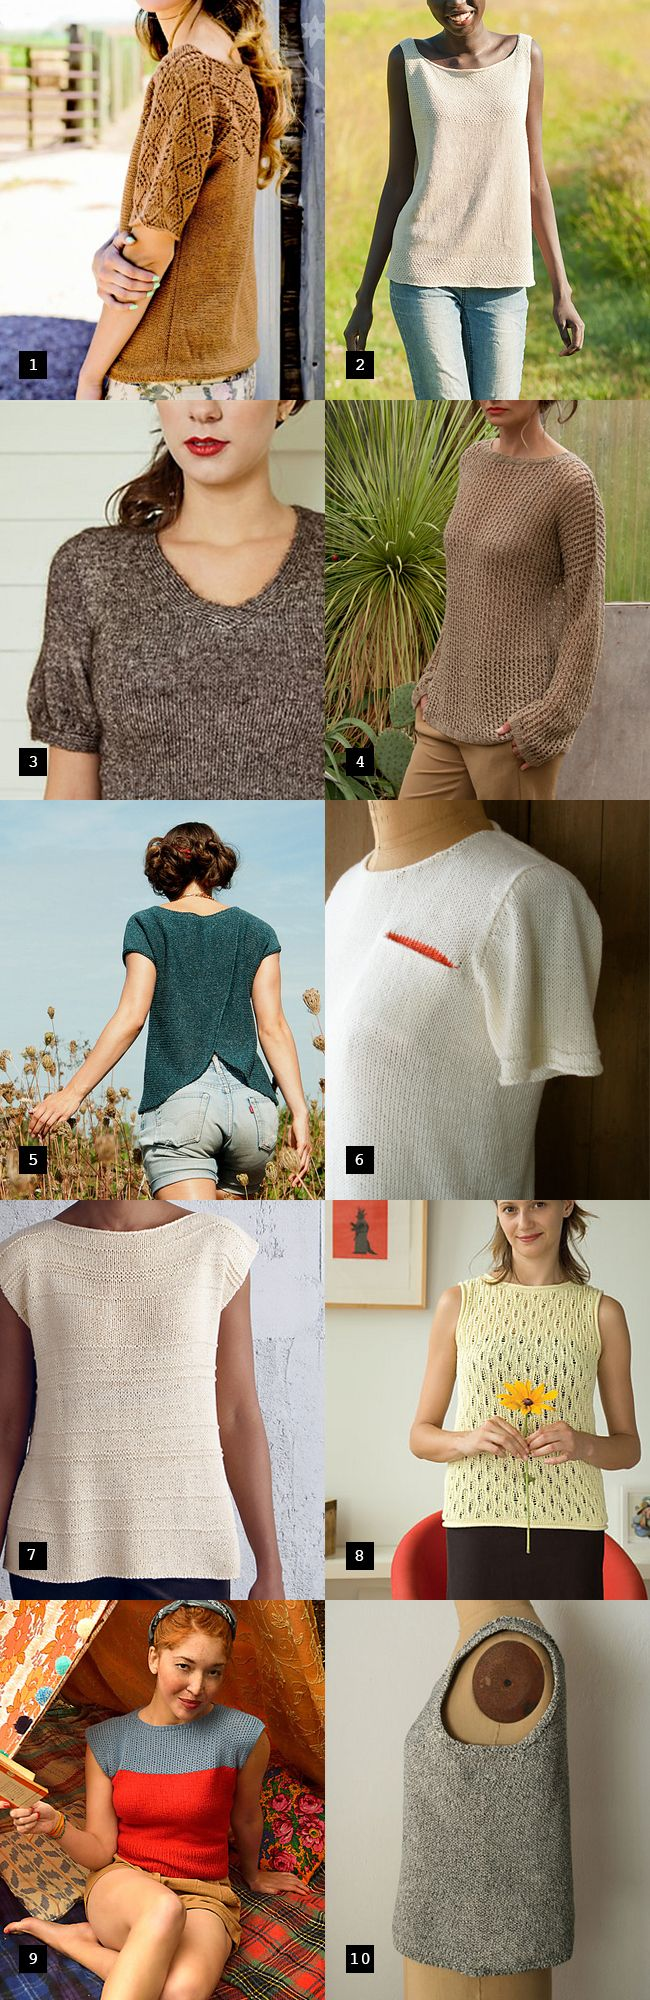 Best summer sweater knitting patterns. Knitted T Shirt patterns. Post by Fringe Association.